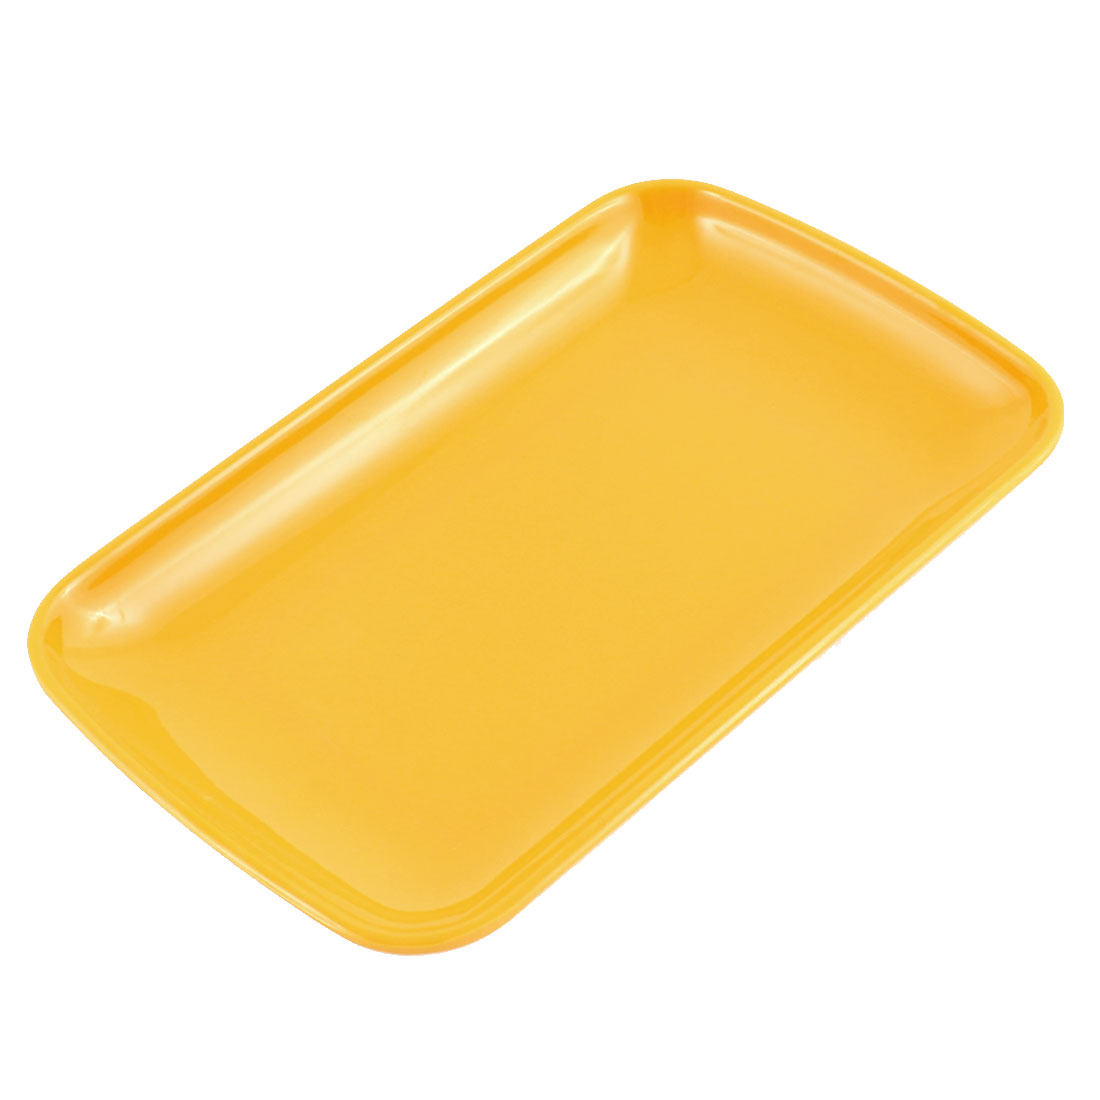 Home Kitchen Plastic Rectangle Design Vermicelli Food Plate Dish Container Orange